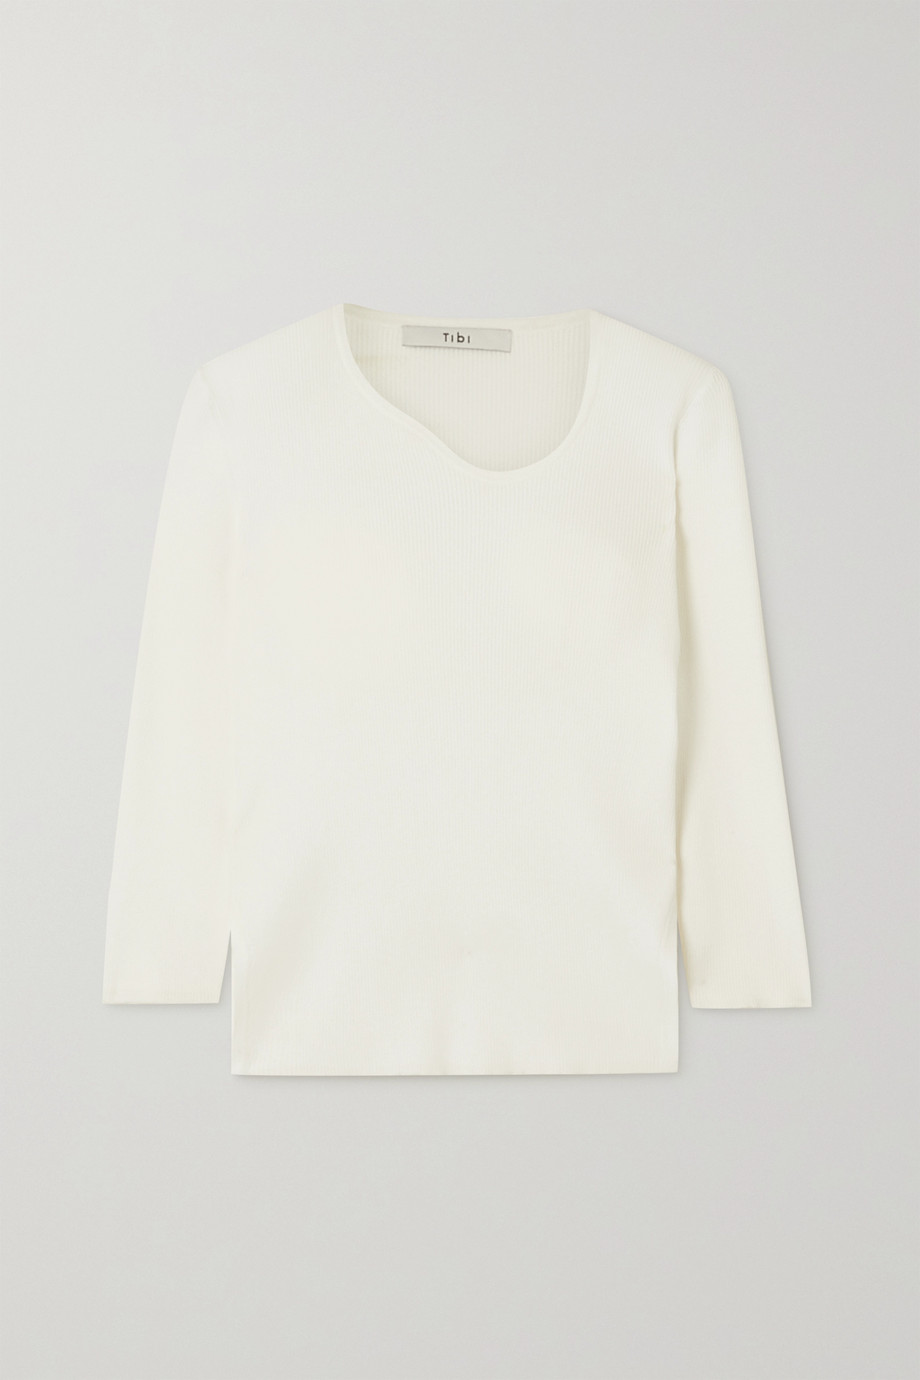 TIBI Giselle asymmetric ribbed stretch-knit sweater